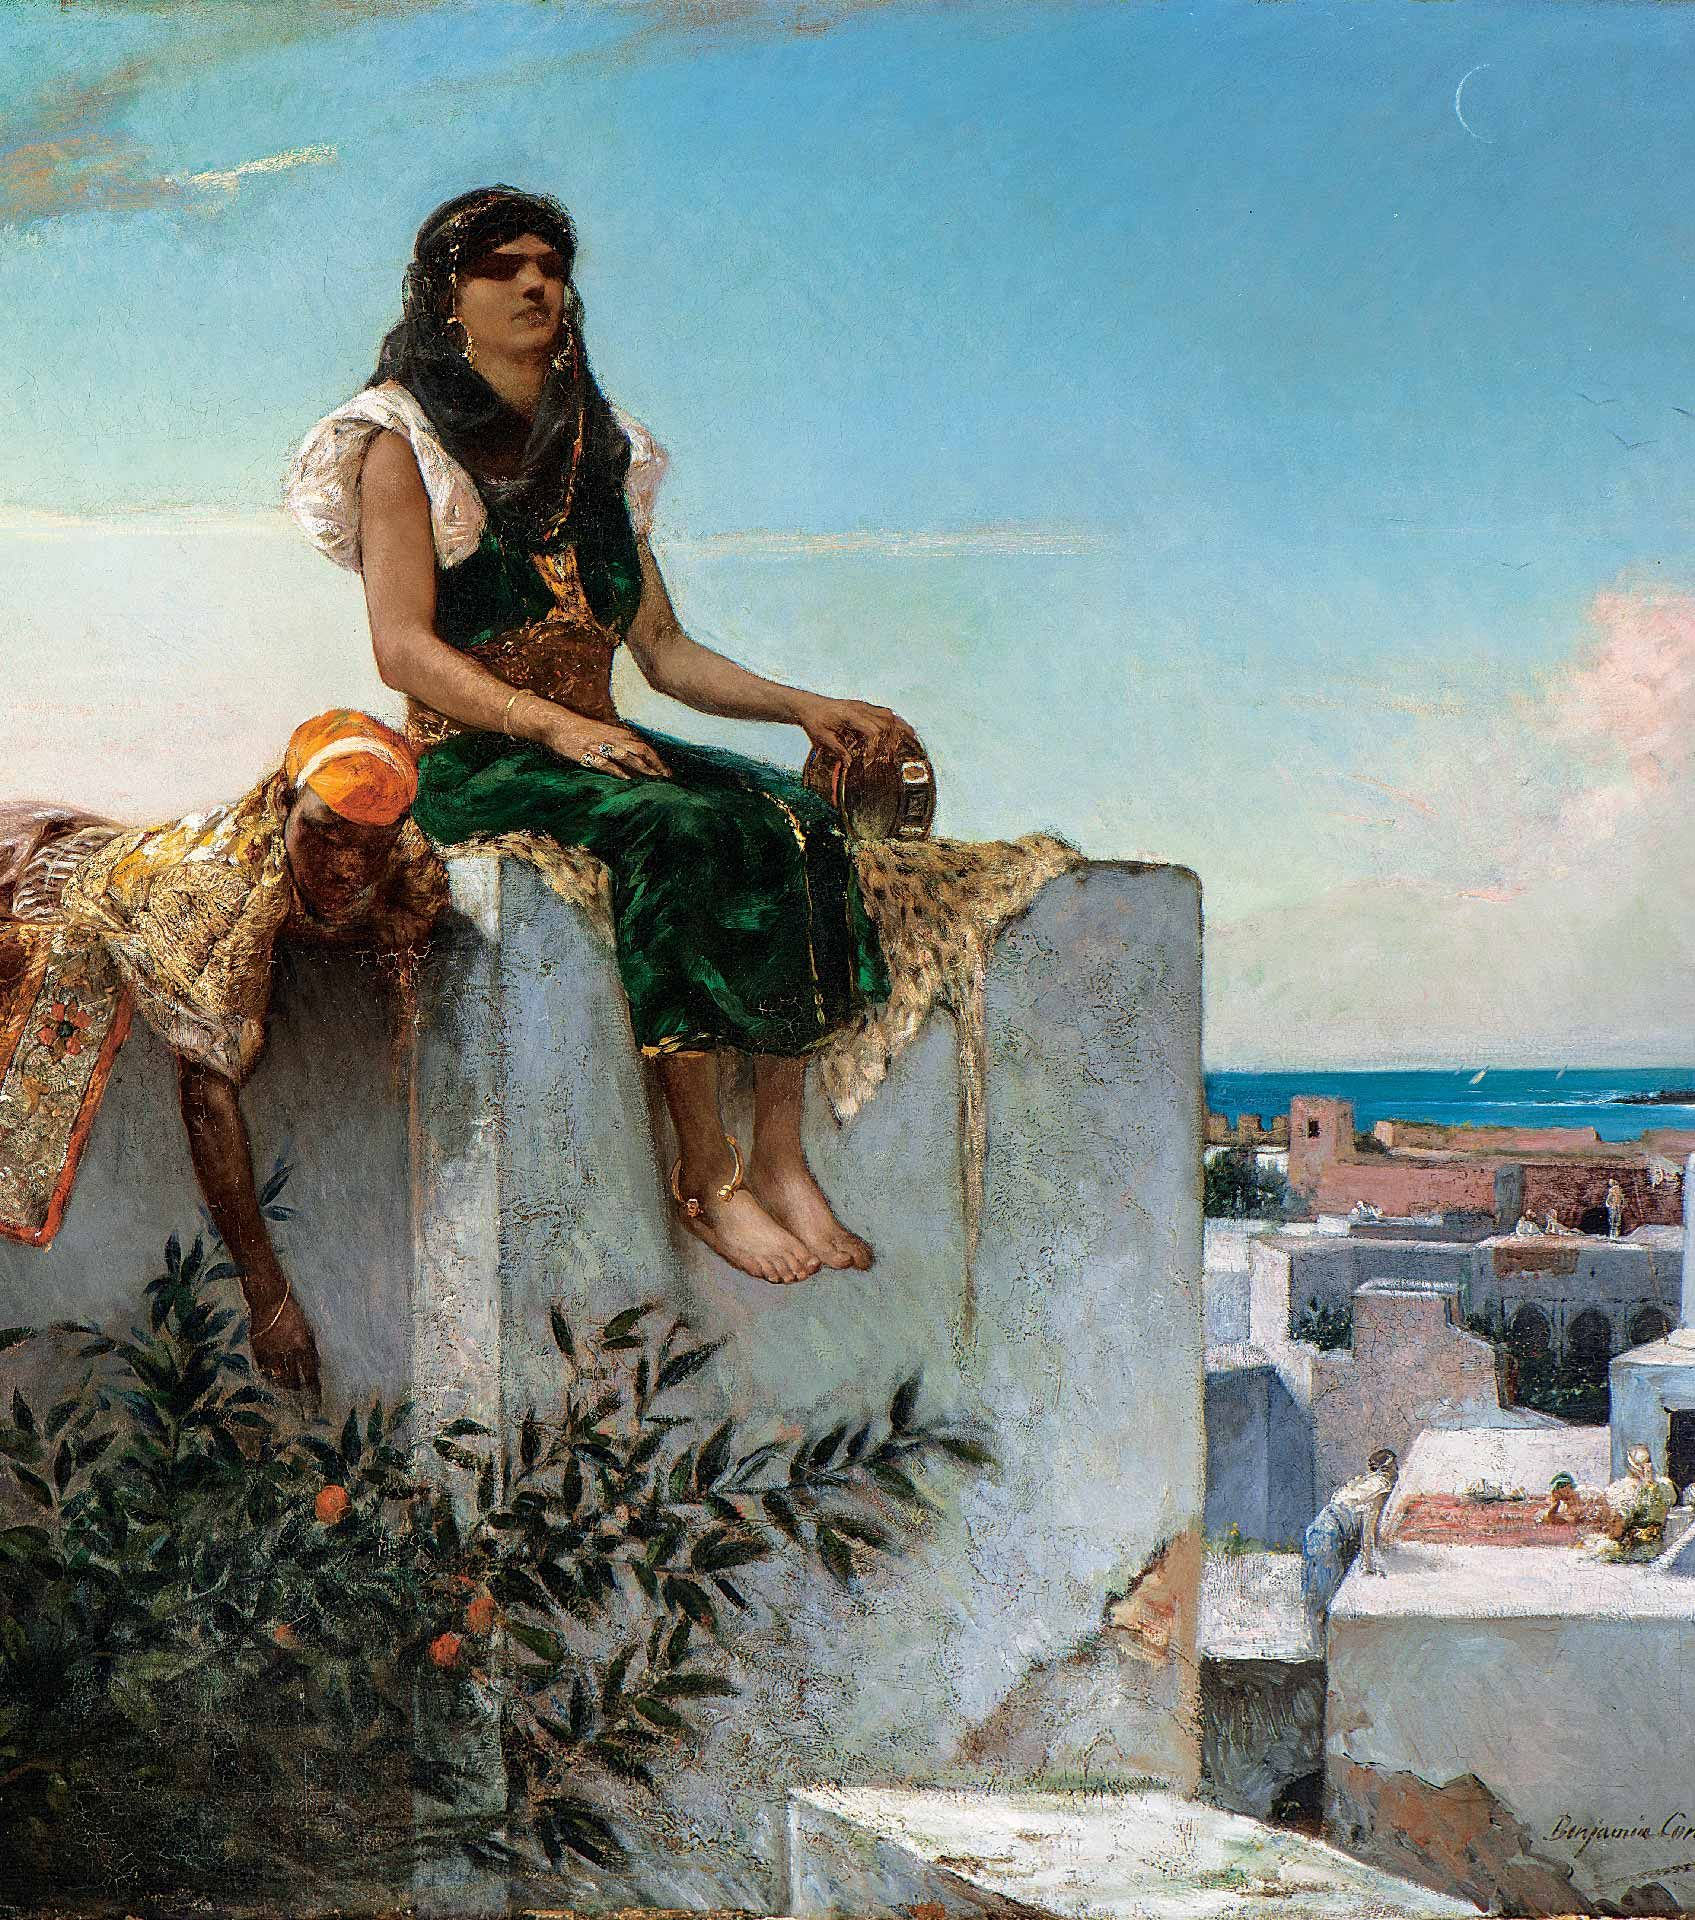 Jean-Joseph Benjamin-Constant, Evening on the Terrace (Morocco), 1879, oil on canvas, 123 x 198.5 cm. MMFA, gift of Lord Strathcona and family. Photo MMFA, Christine Guest